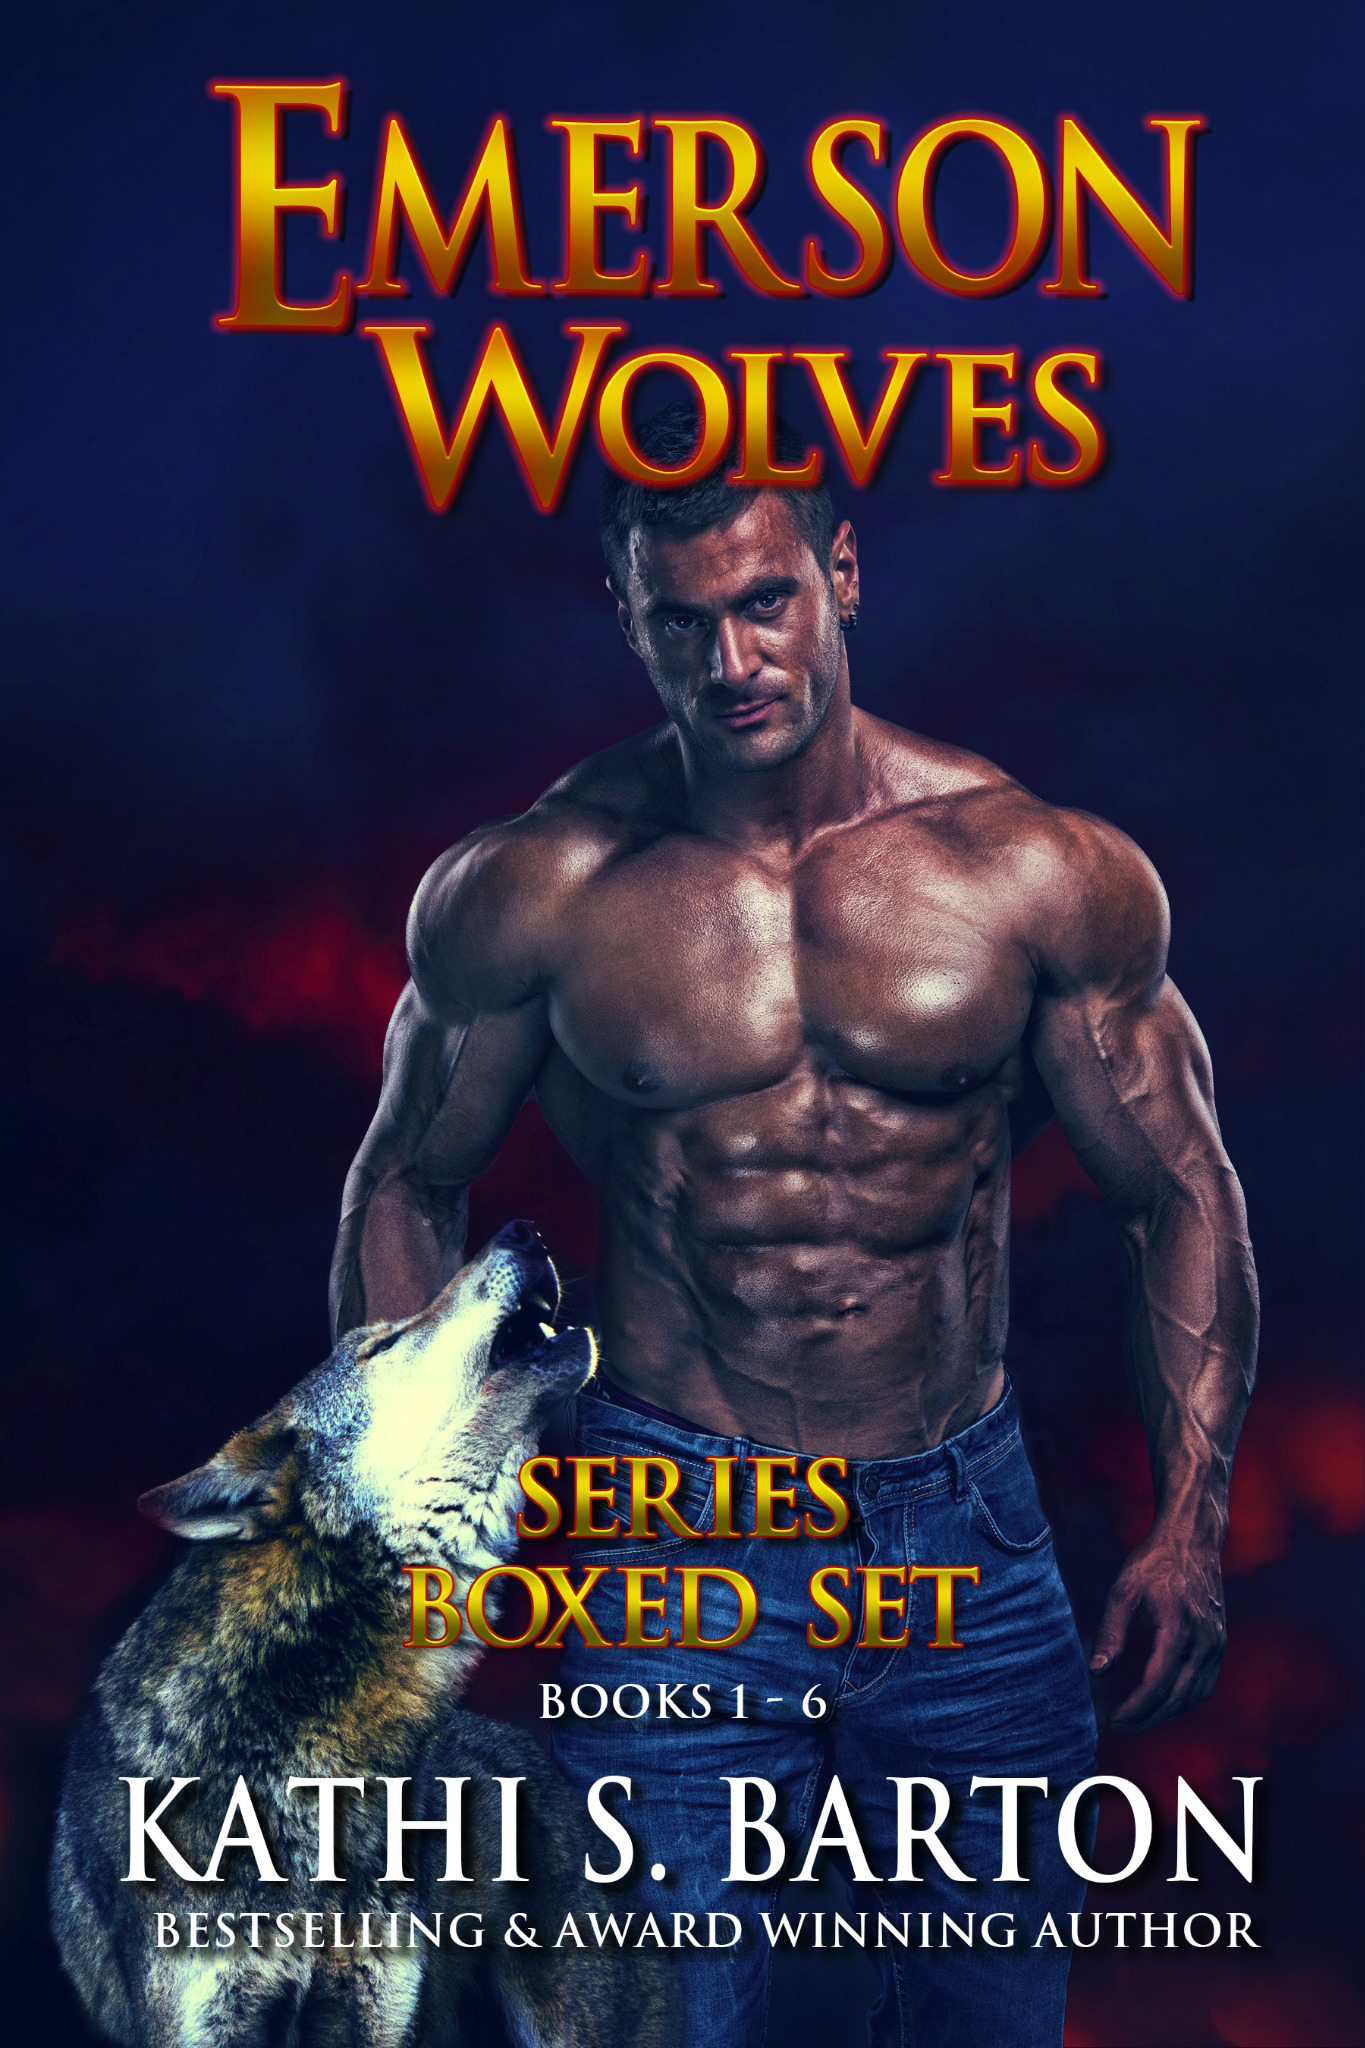 Emerson Wolves Series Boxed Set Book 1 - 6